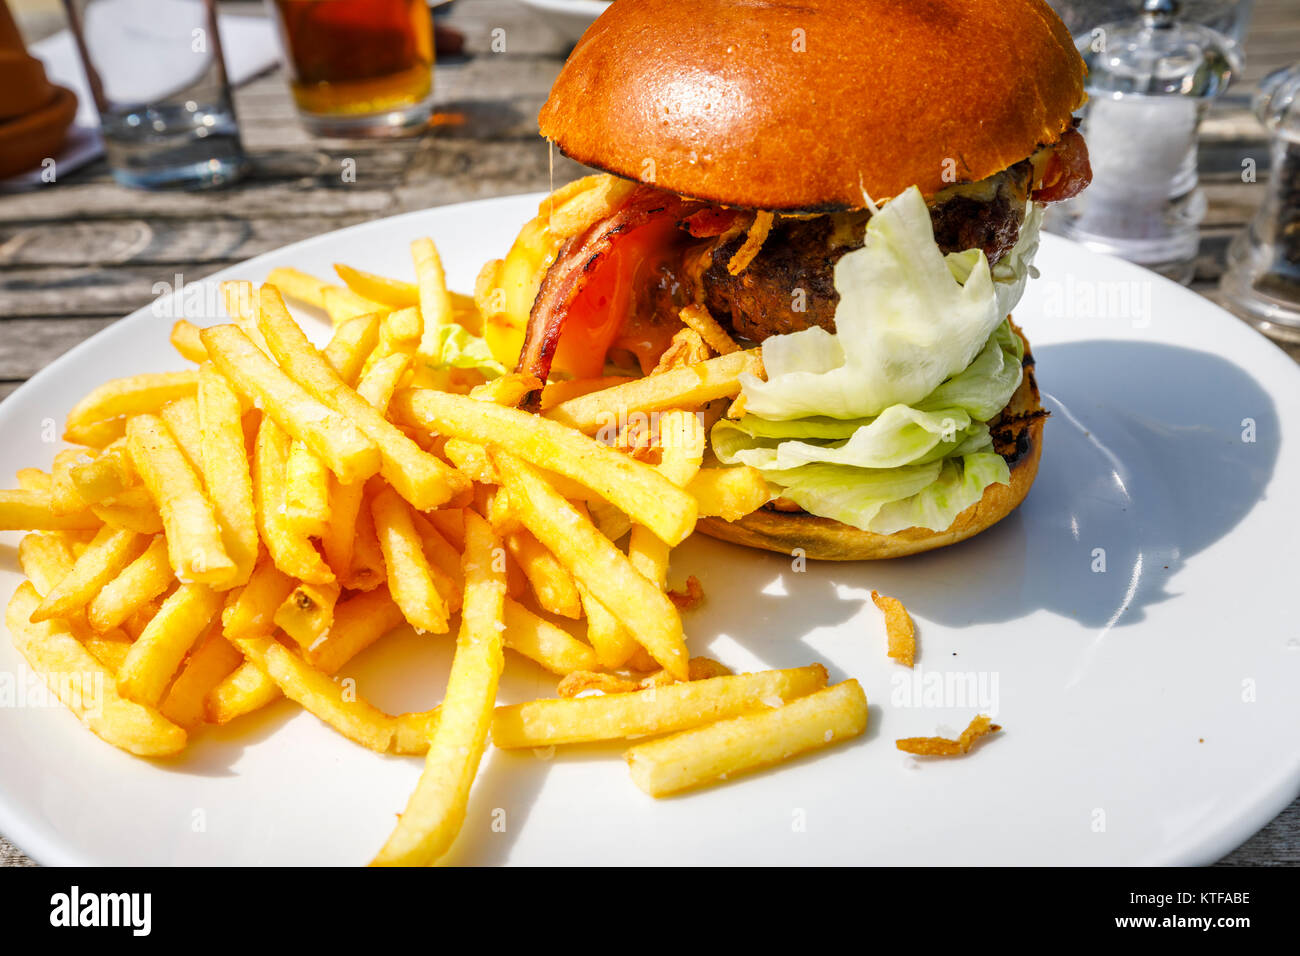 Obesity: Typical British pub food: a beefburger in a bun with cheese and bacon and a pile of golden French fries, - Stock Image